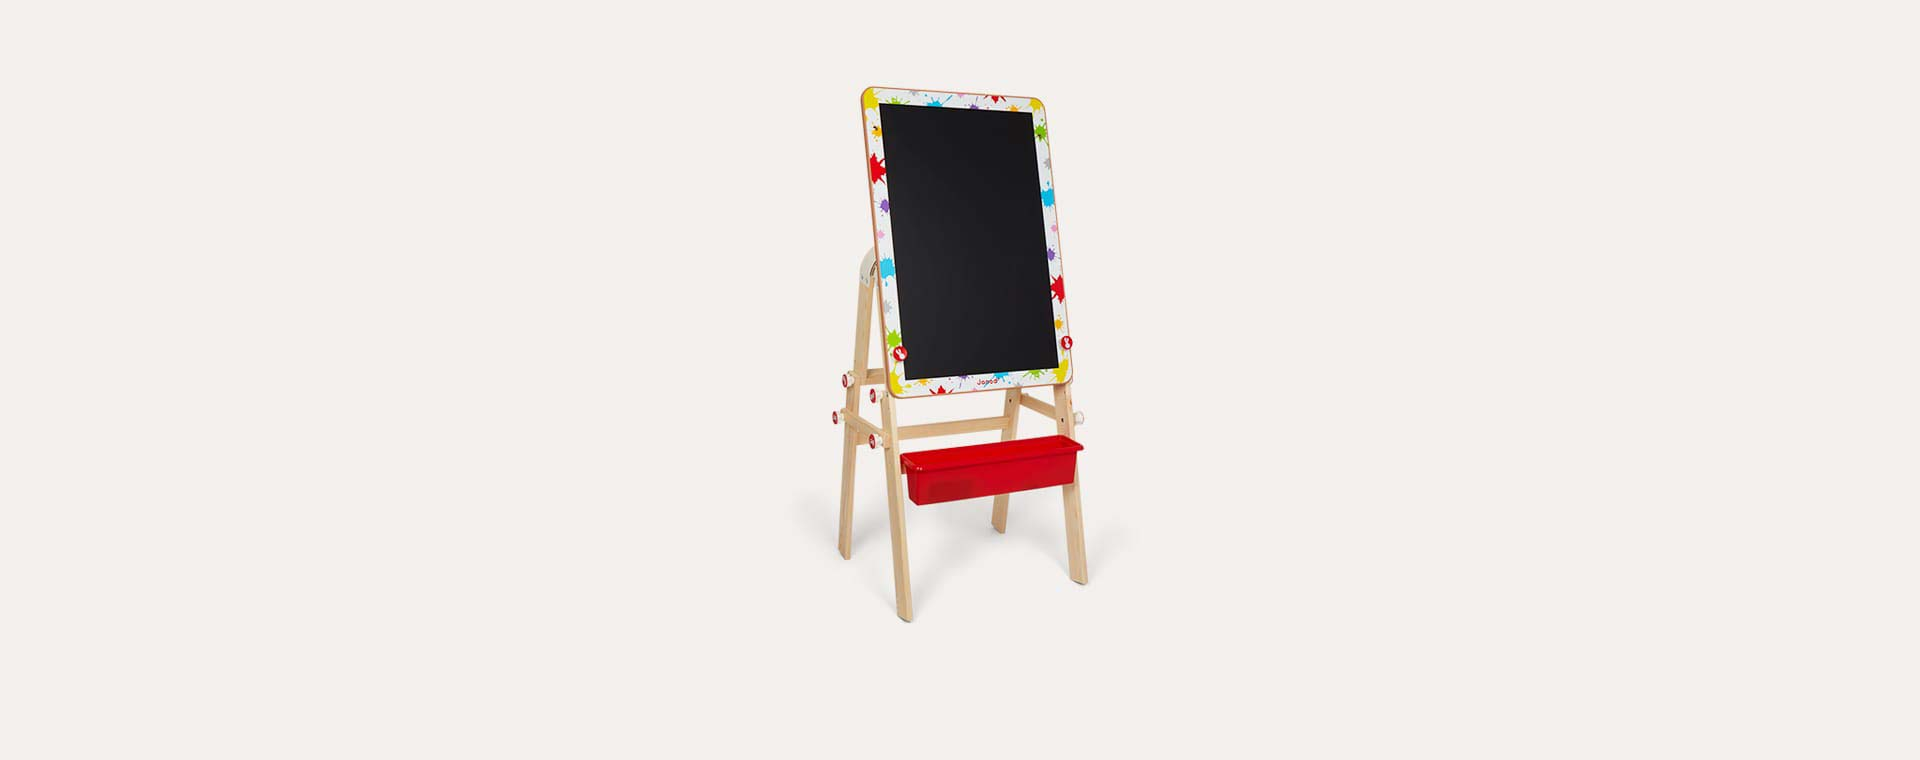 Multi Janod Splash 2-In-1 Convertible Desk And Easel